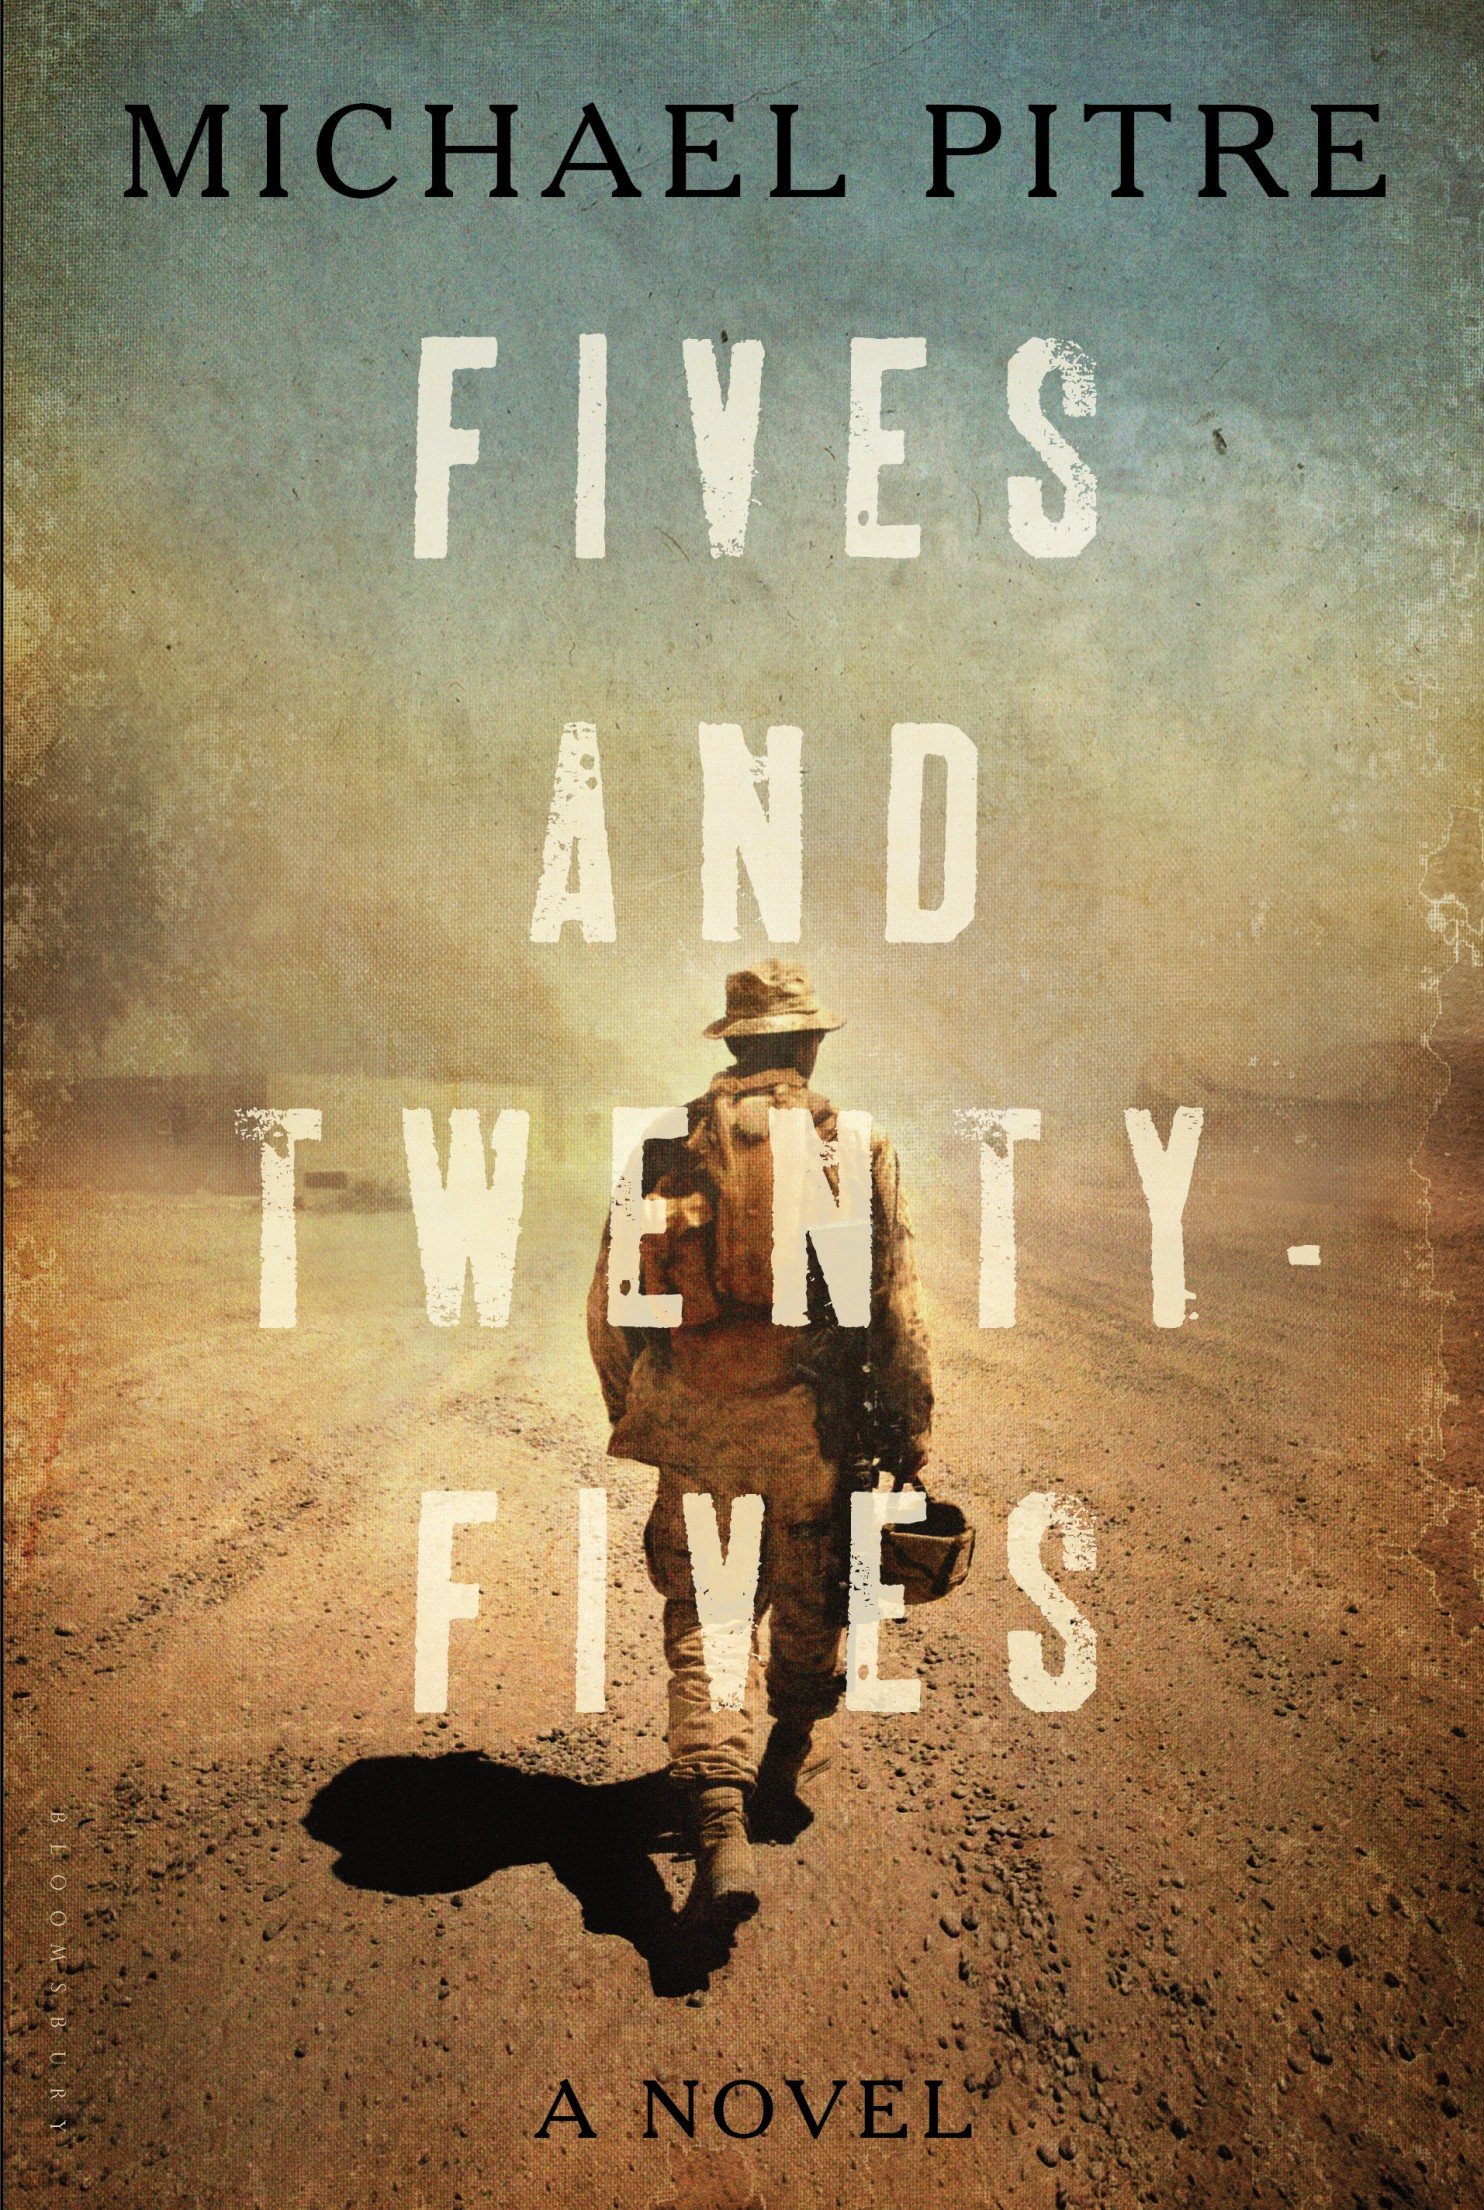 Fives and Twenty-Fives book cover